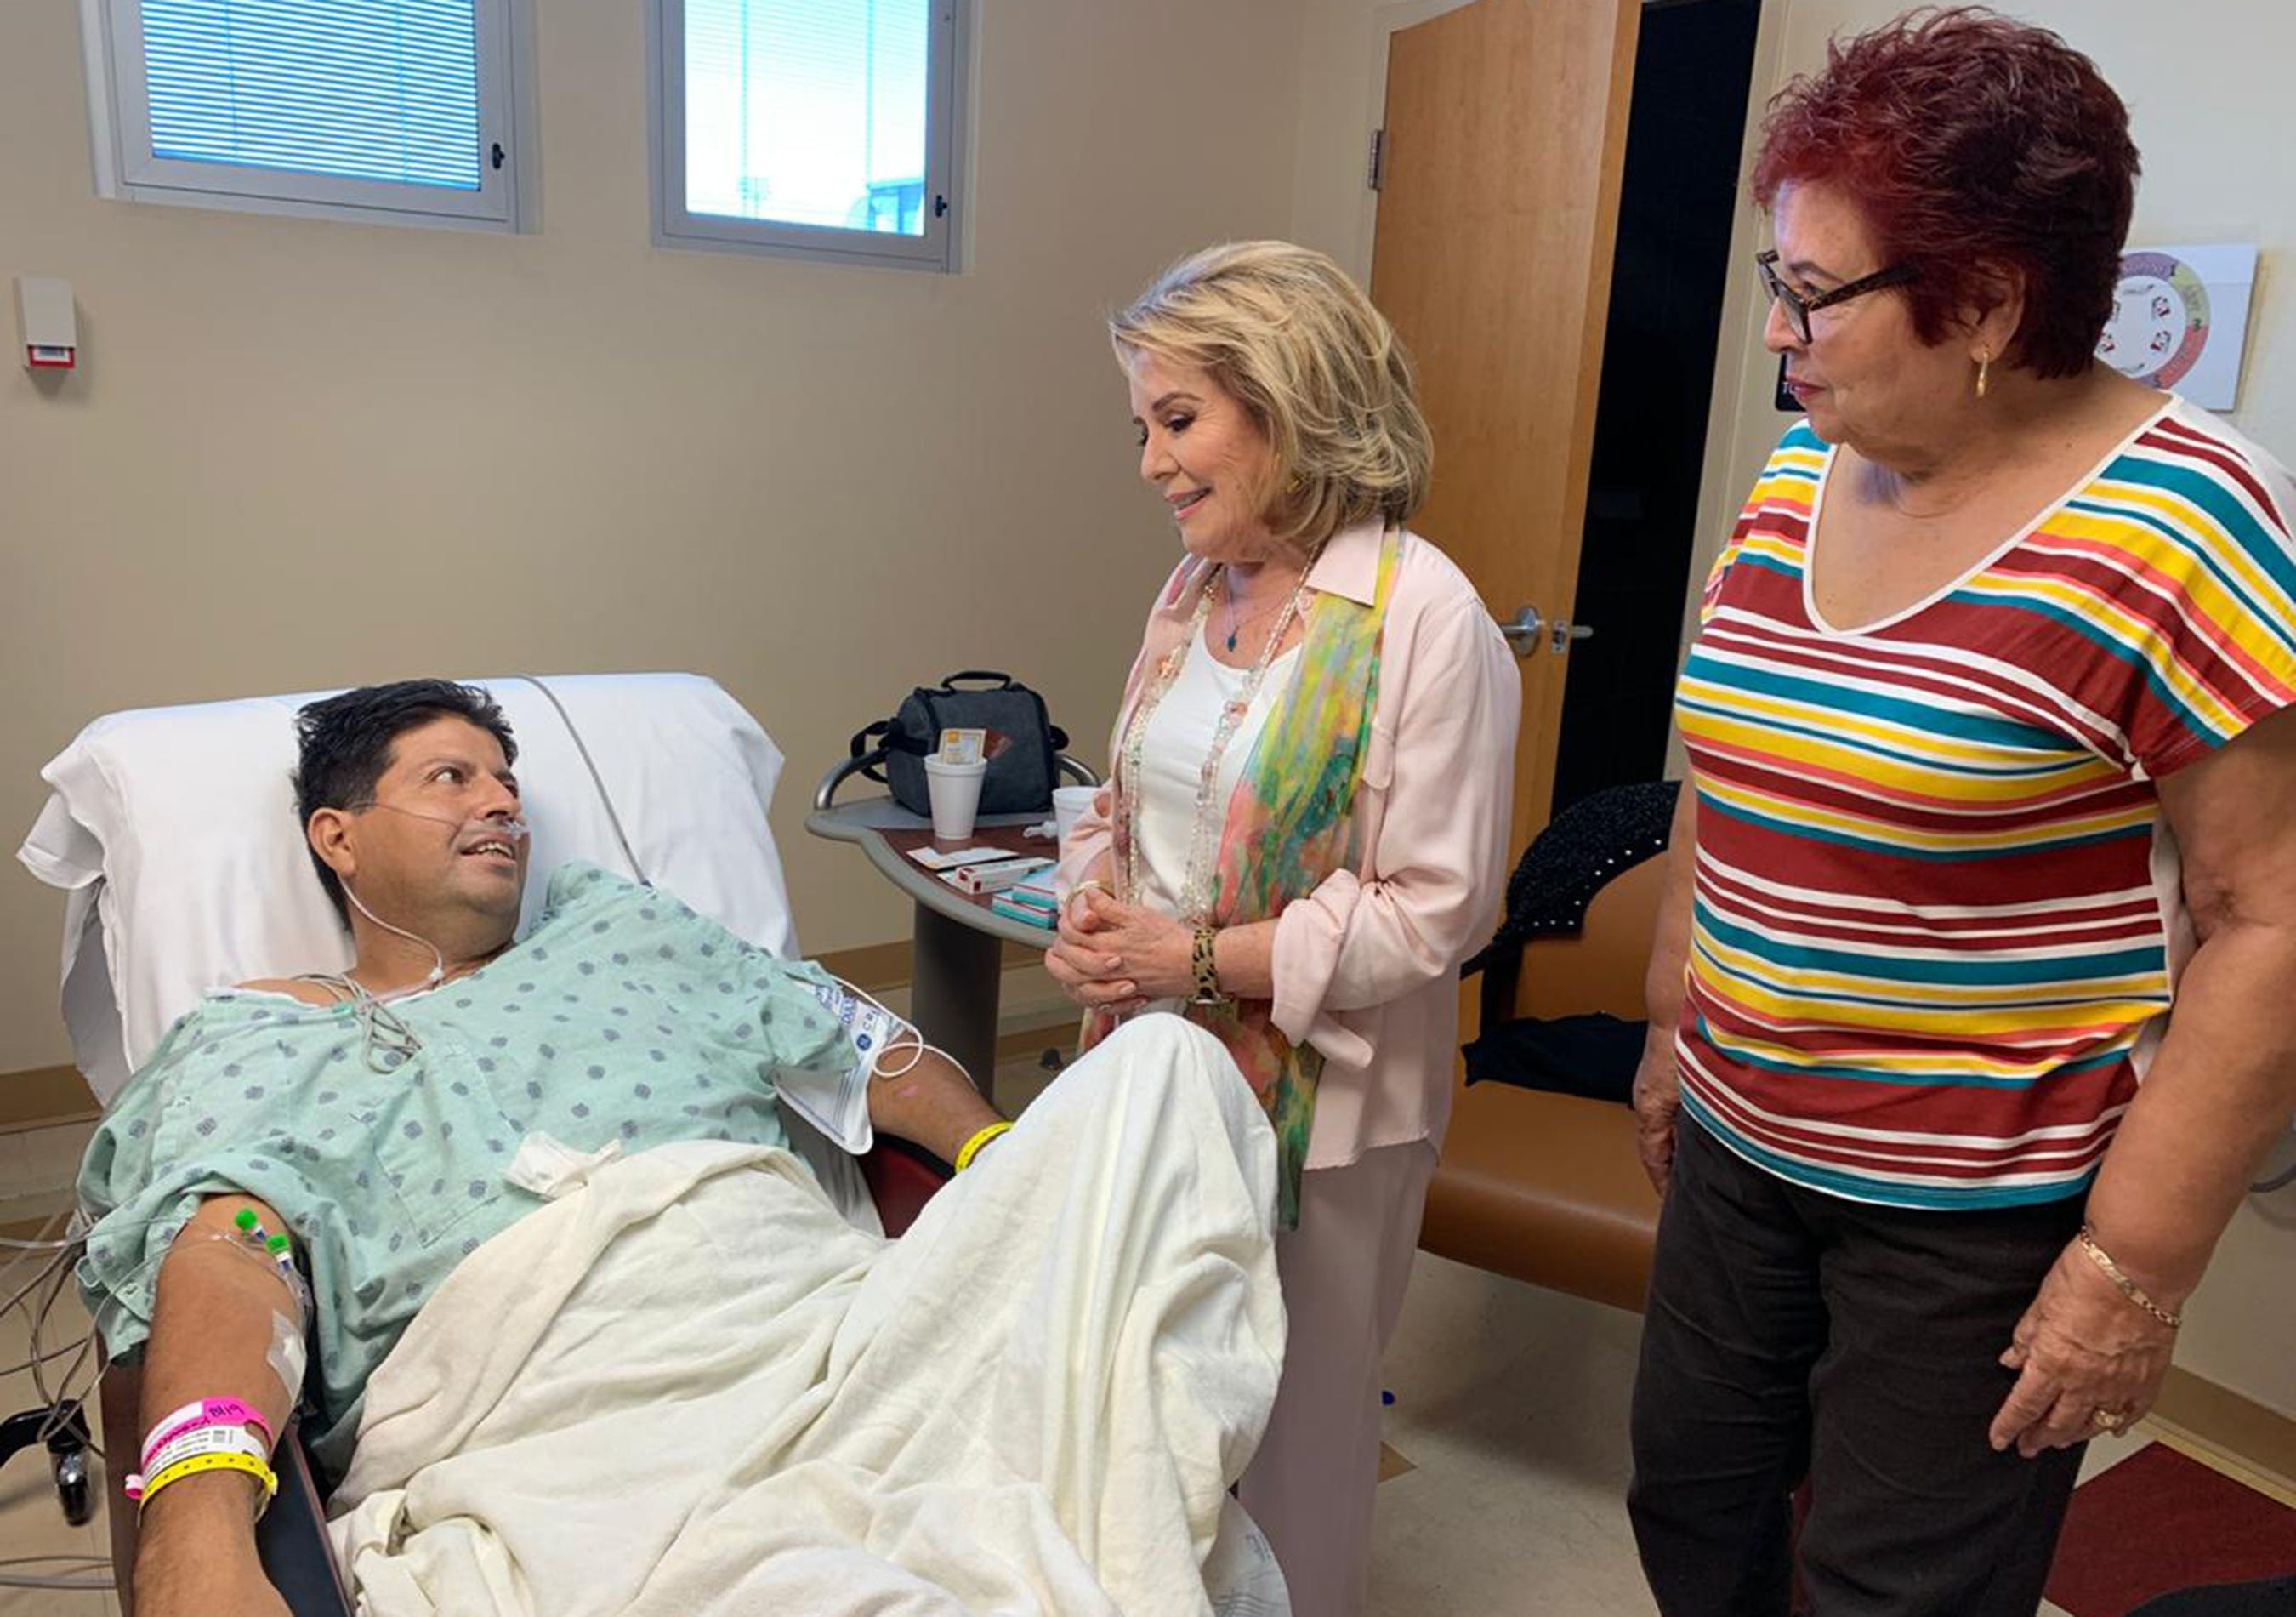 Mario De Alba responds with delight by a visit from his favorite singer Vikki Carr, center, in his hospital room at University Medical Center following the Aug. 3 2019, Walmart mass shooting in El Paso. Carr, who was born in El Paso, serenaded De Alba and his mother, Maria de los Angeles Montes.